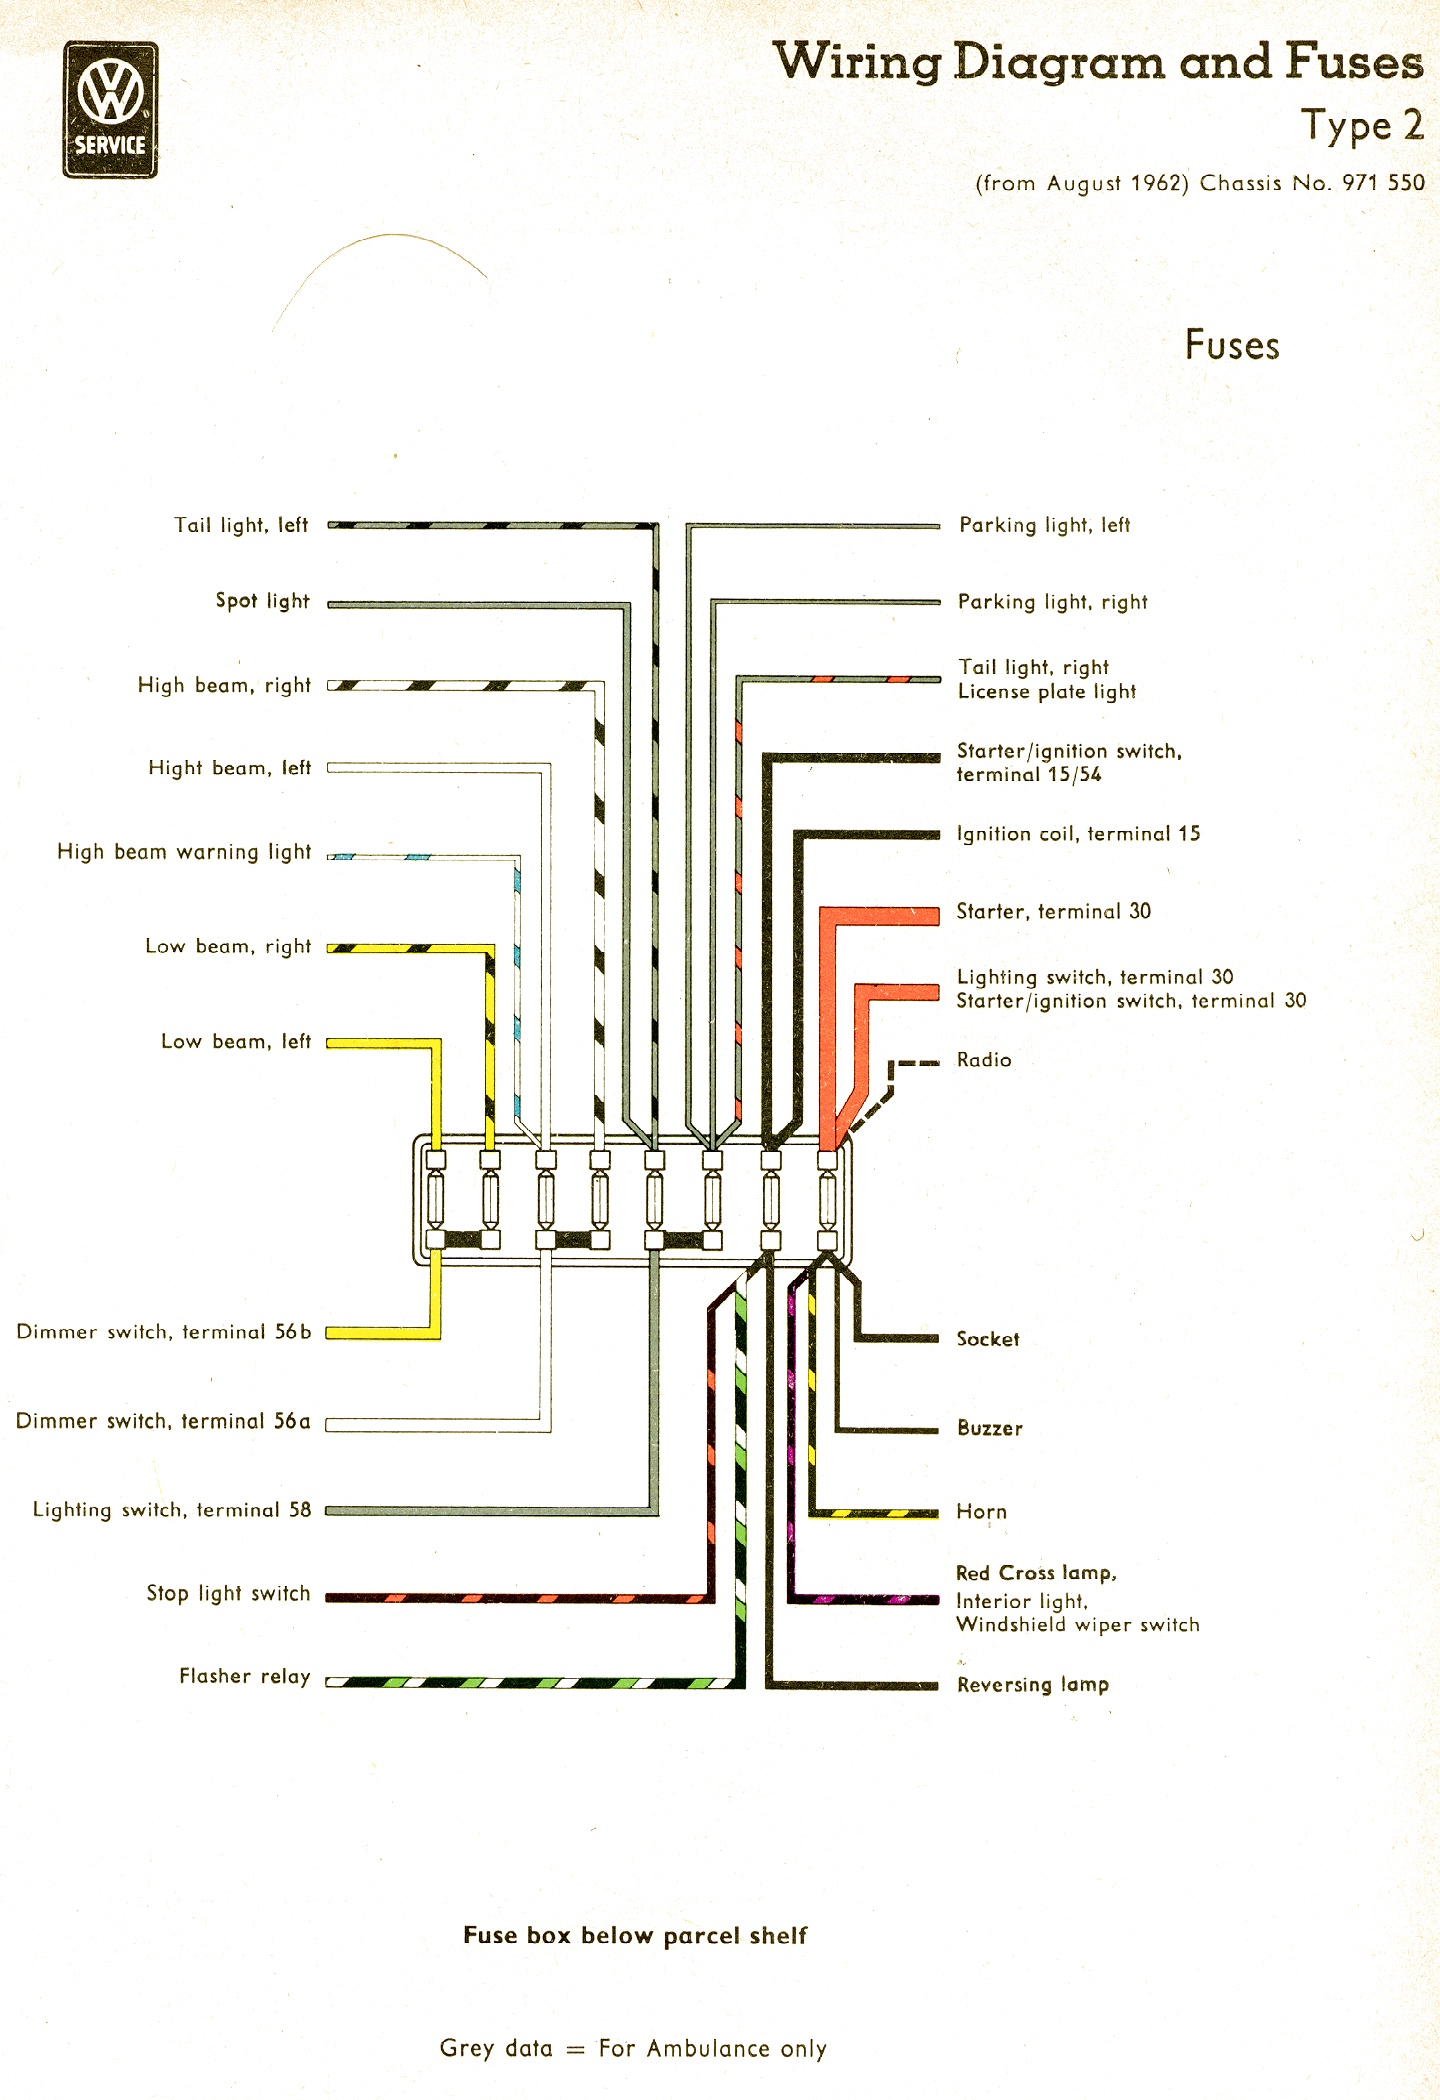 1974 Beetle Fuse Box Wiring Schematics Diagram B5 S4 Harness Type 1 Vw Opinions About U2022